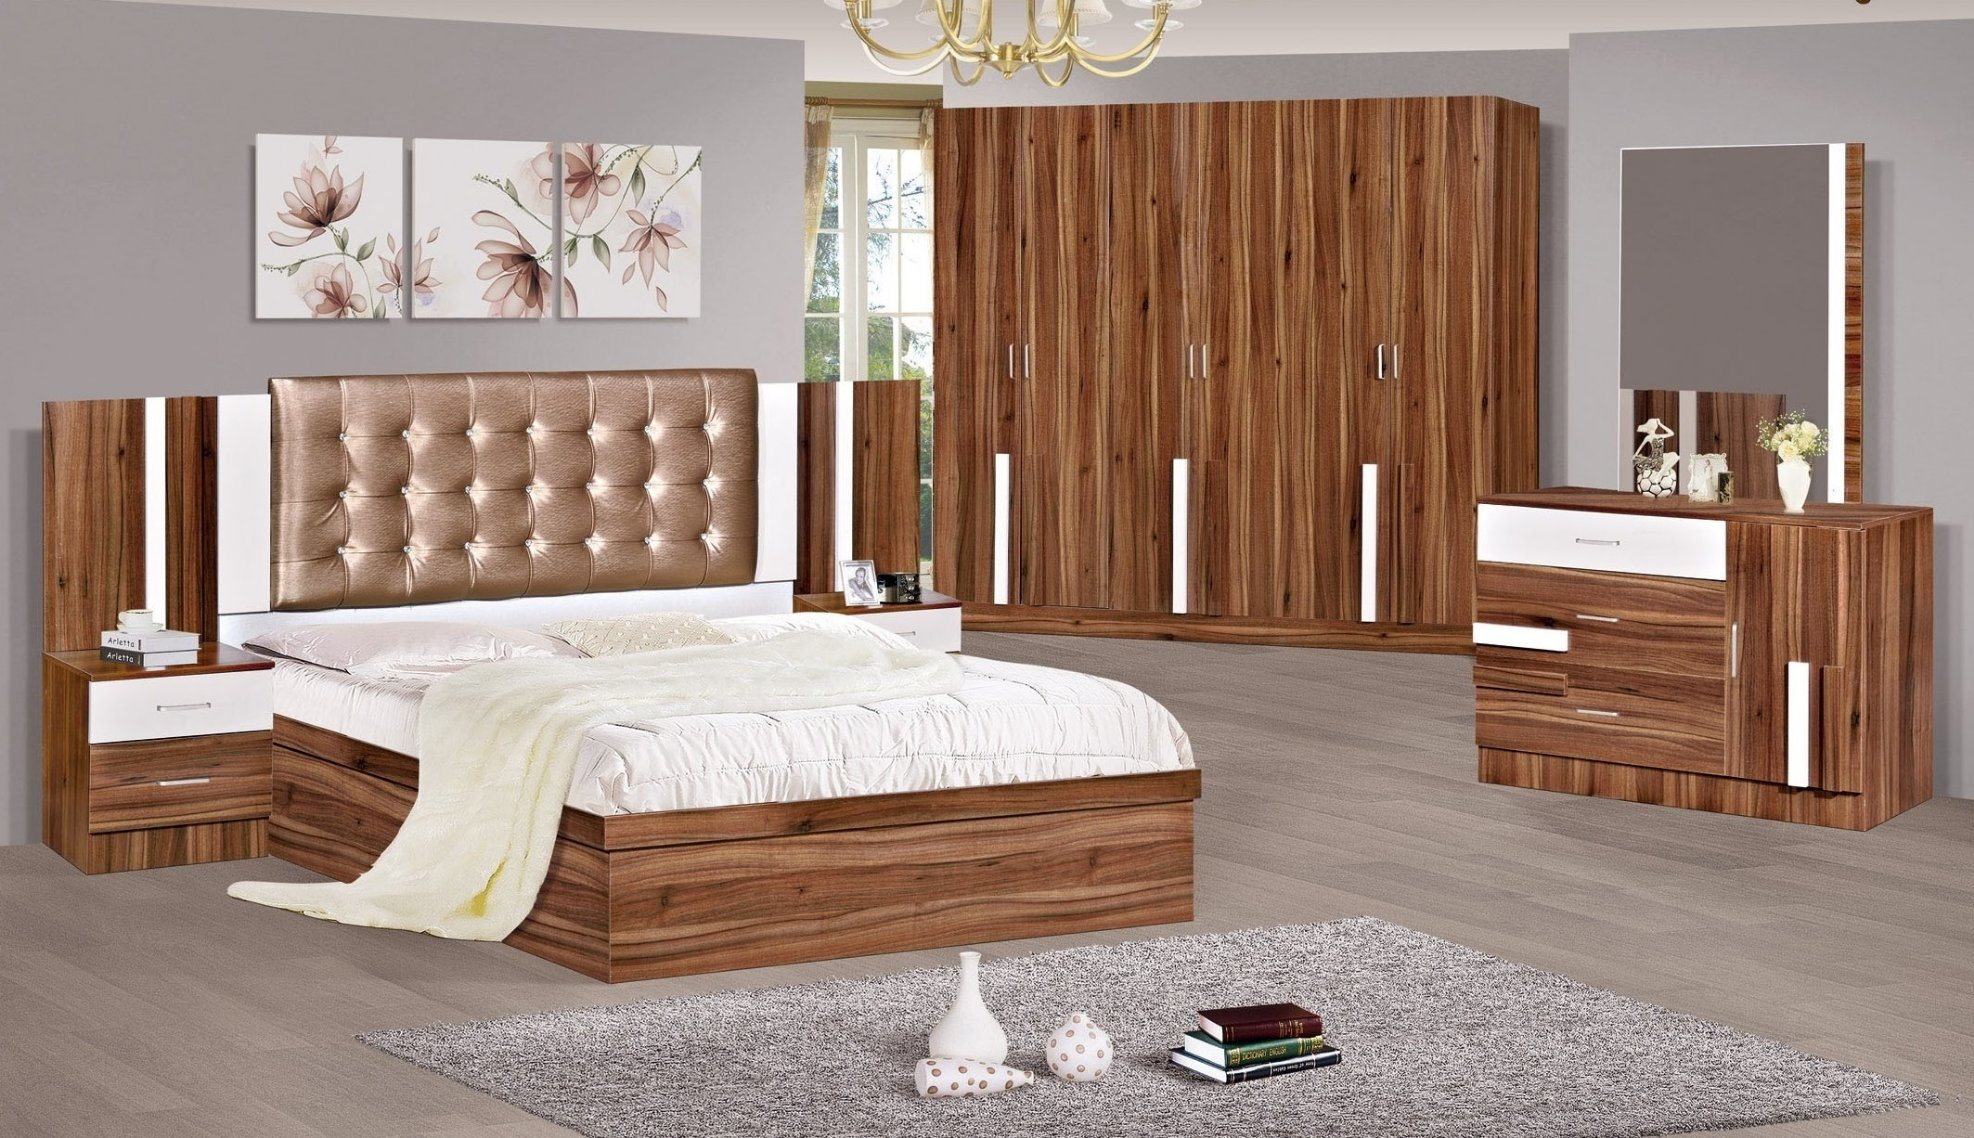 What To Look For When Buying New Bedroom Furniture